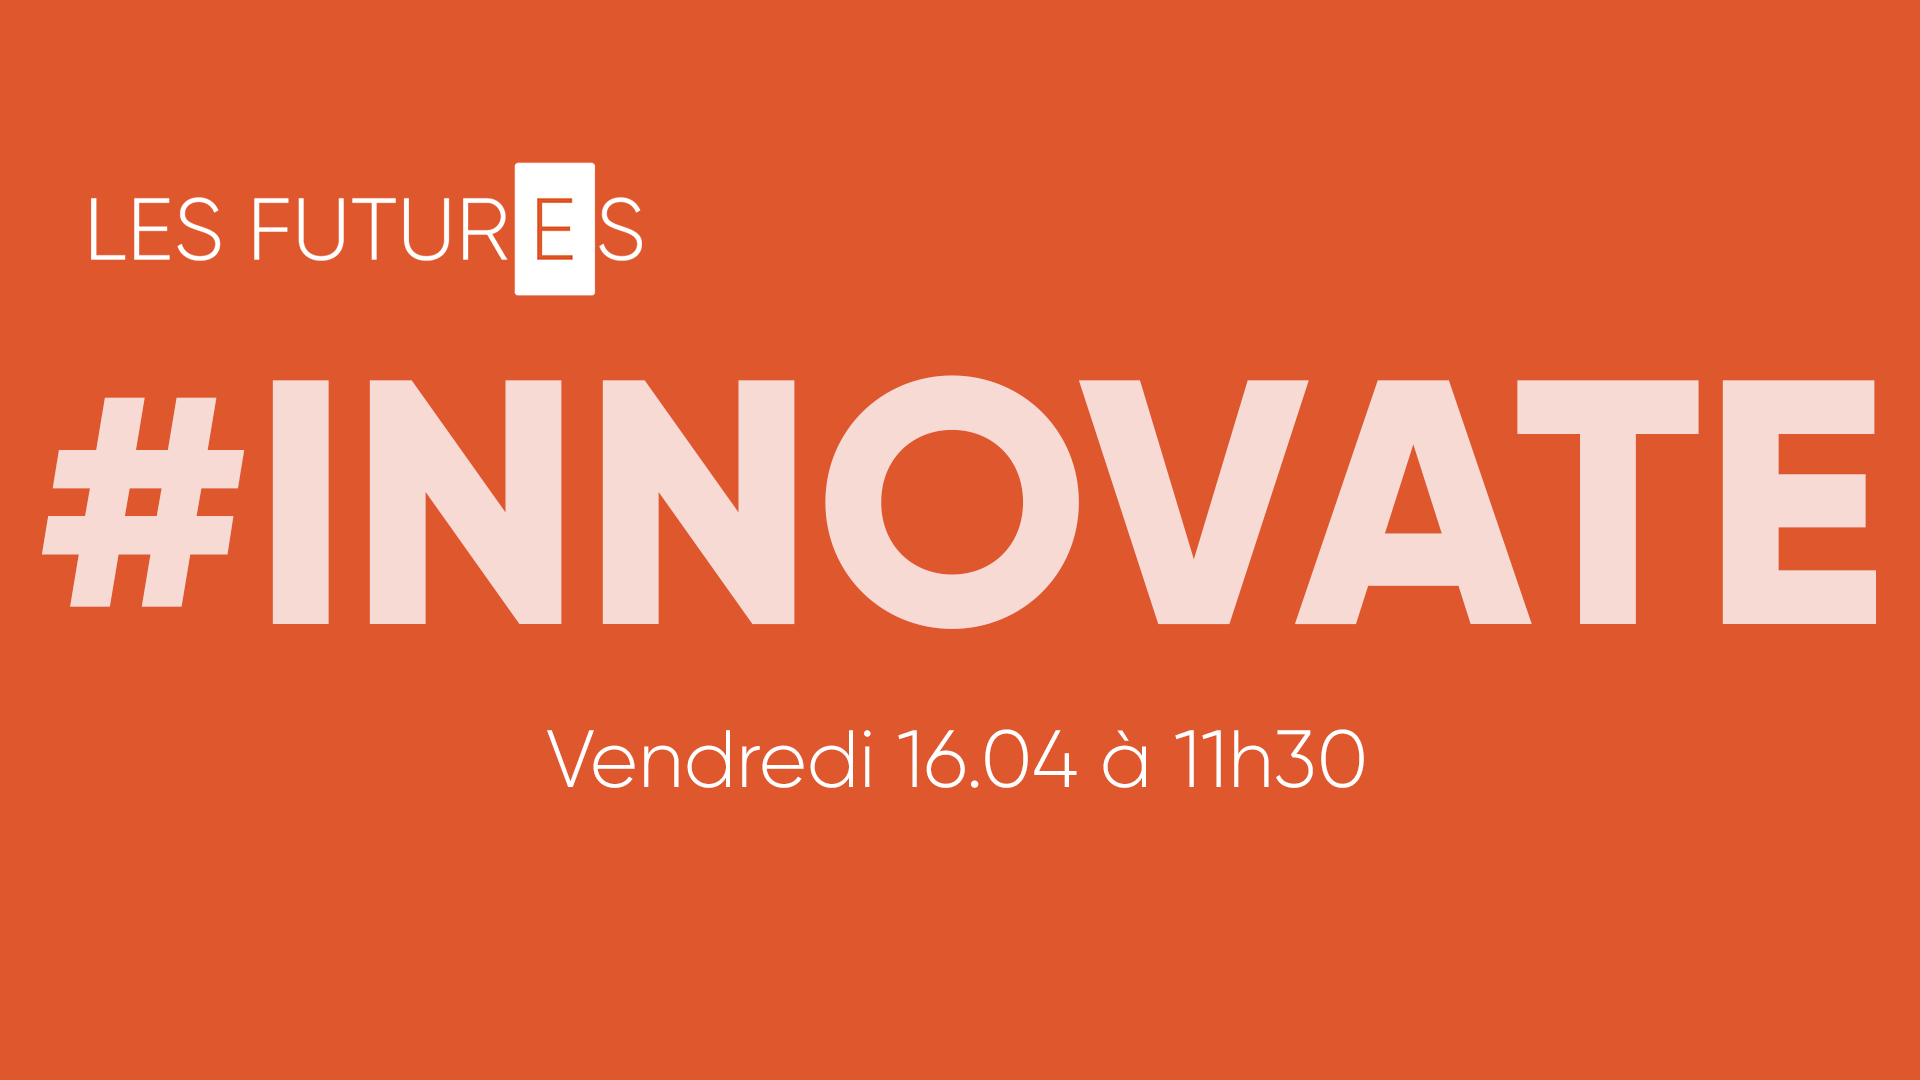 couverture youtube les futures innovate